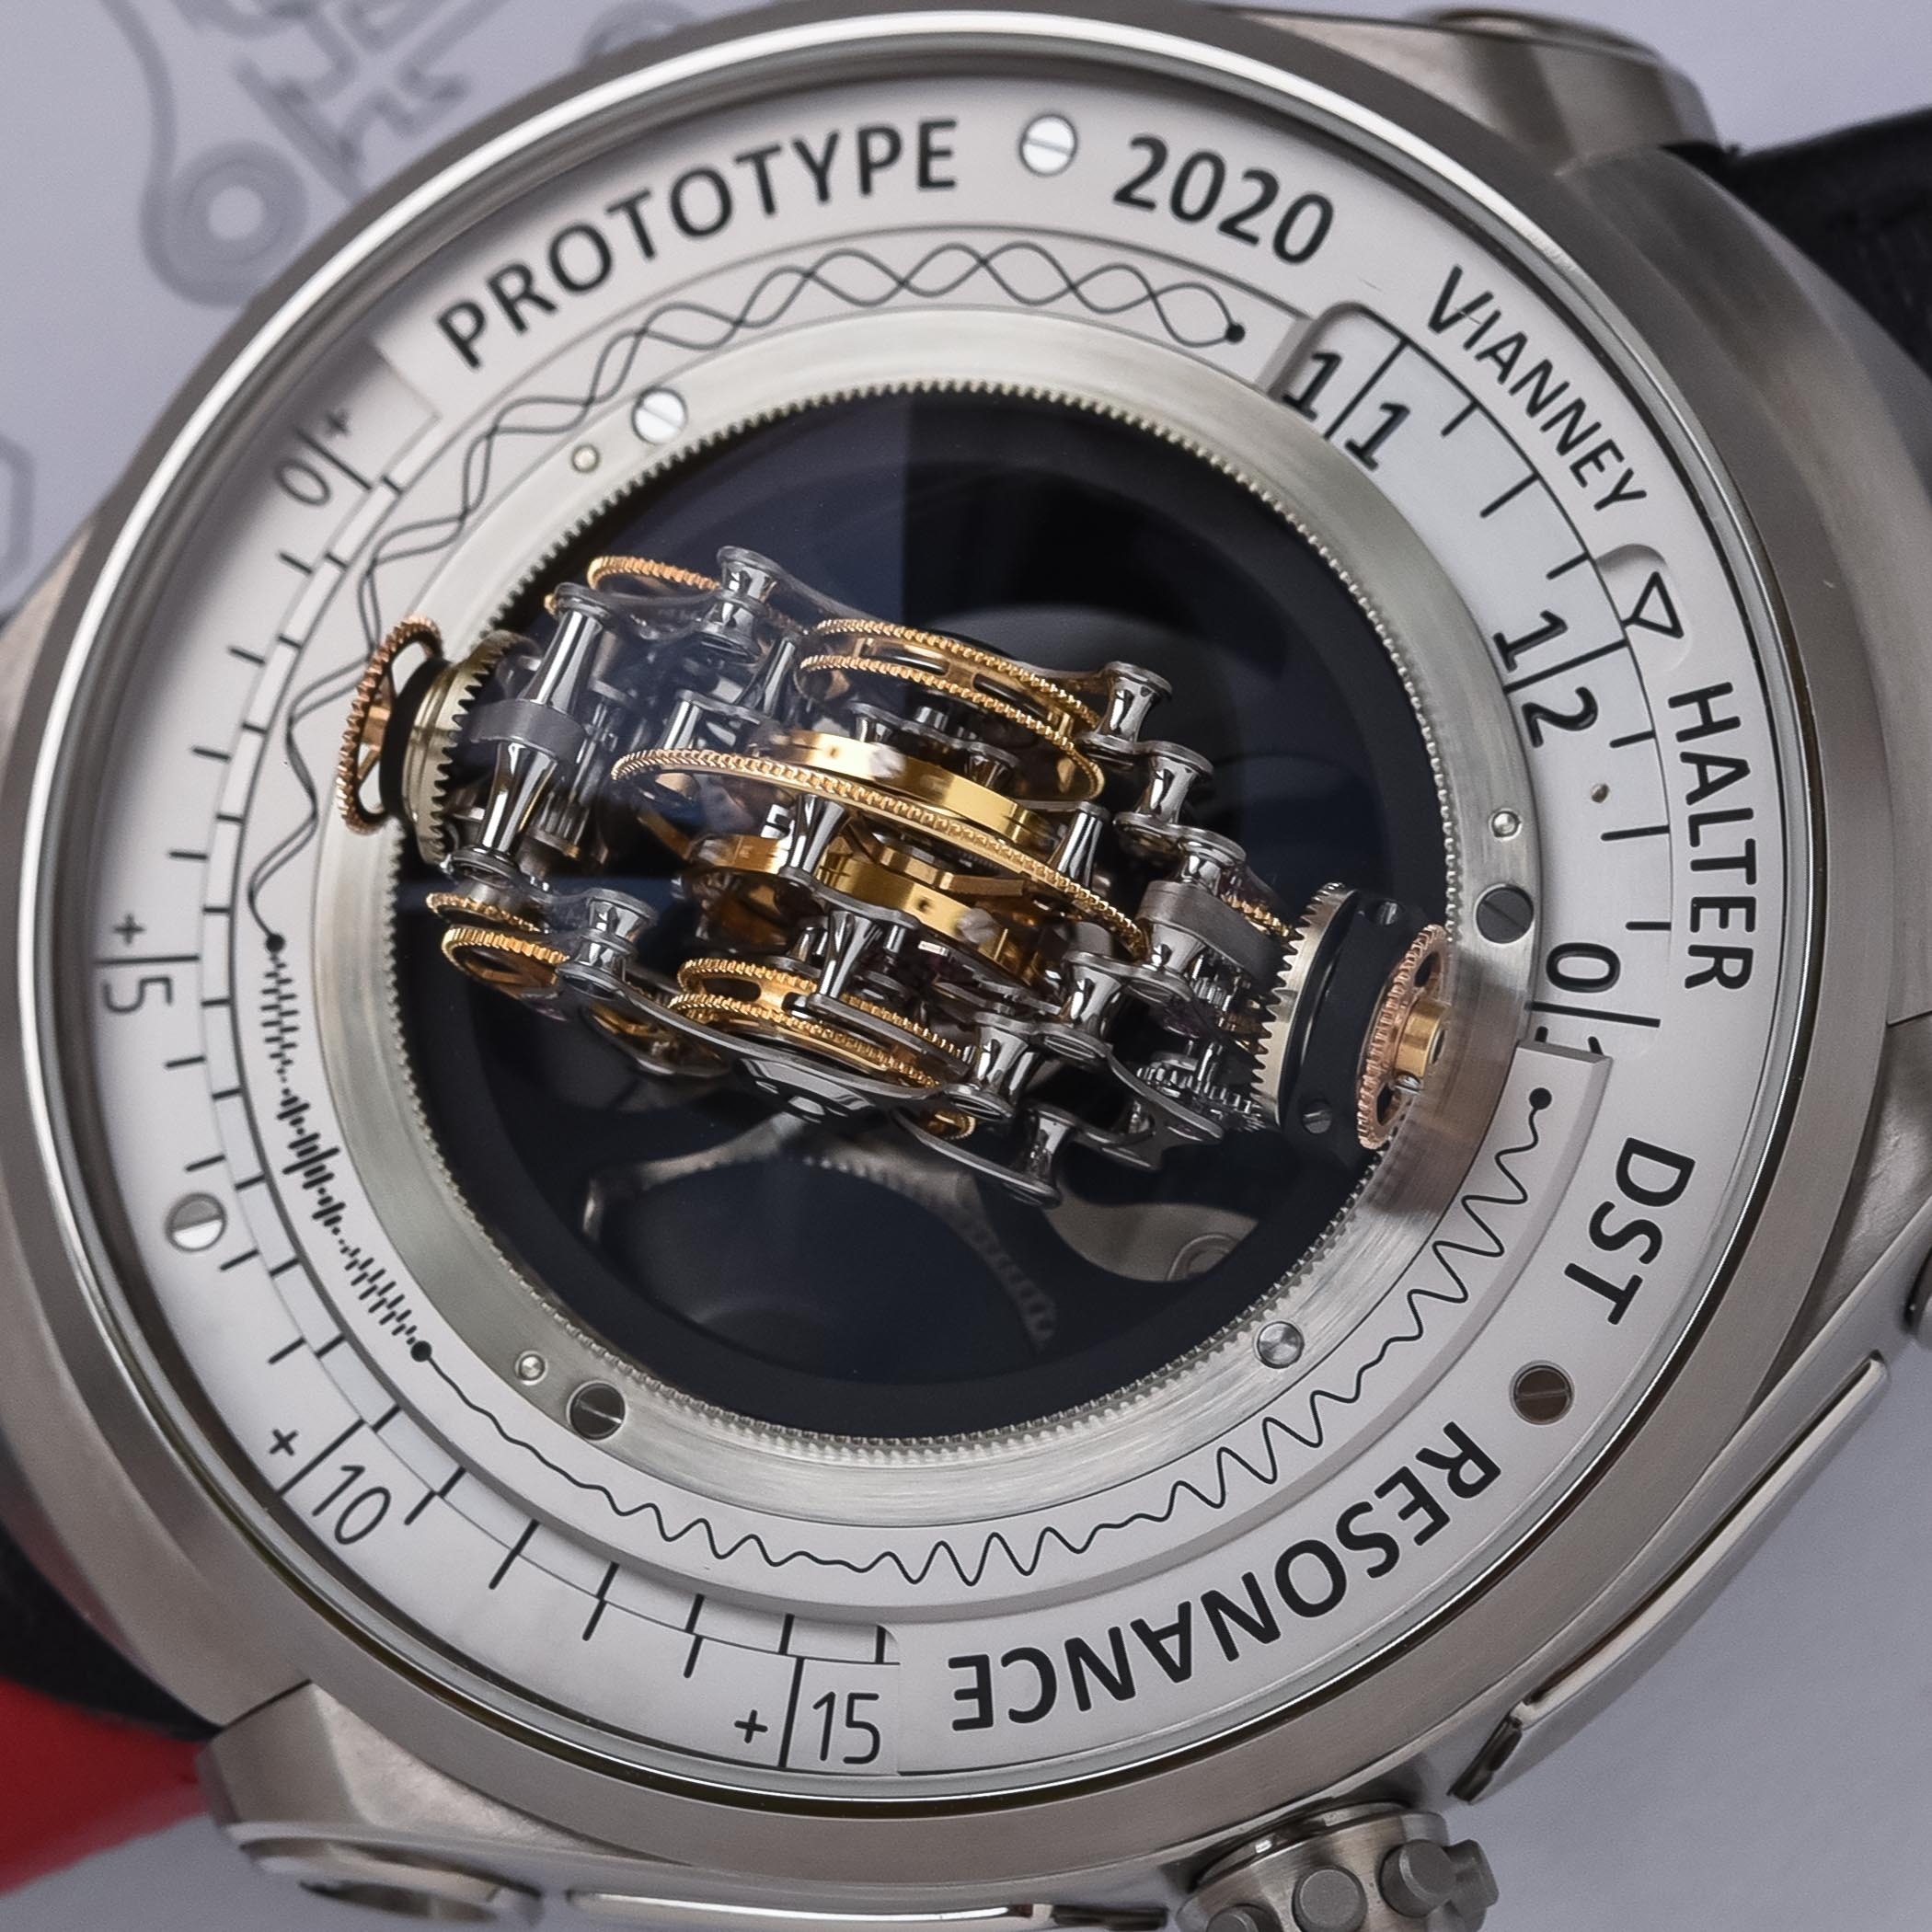 Vianney-Halter-Deep-Space-Resonance-Tourbillon-Prototype-4.jpg